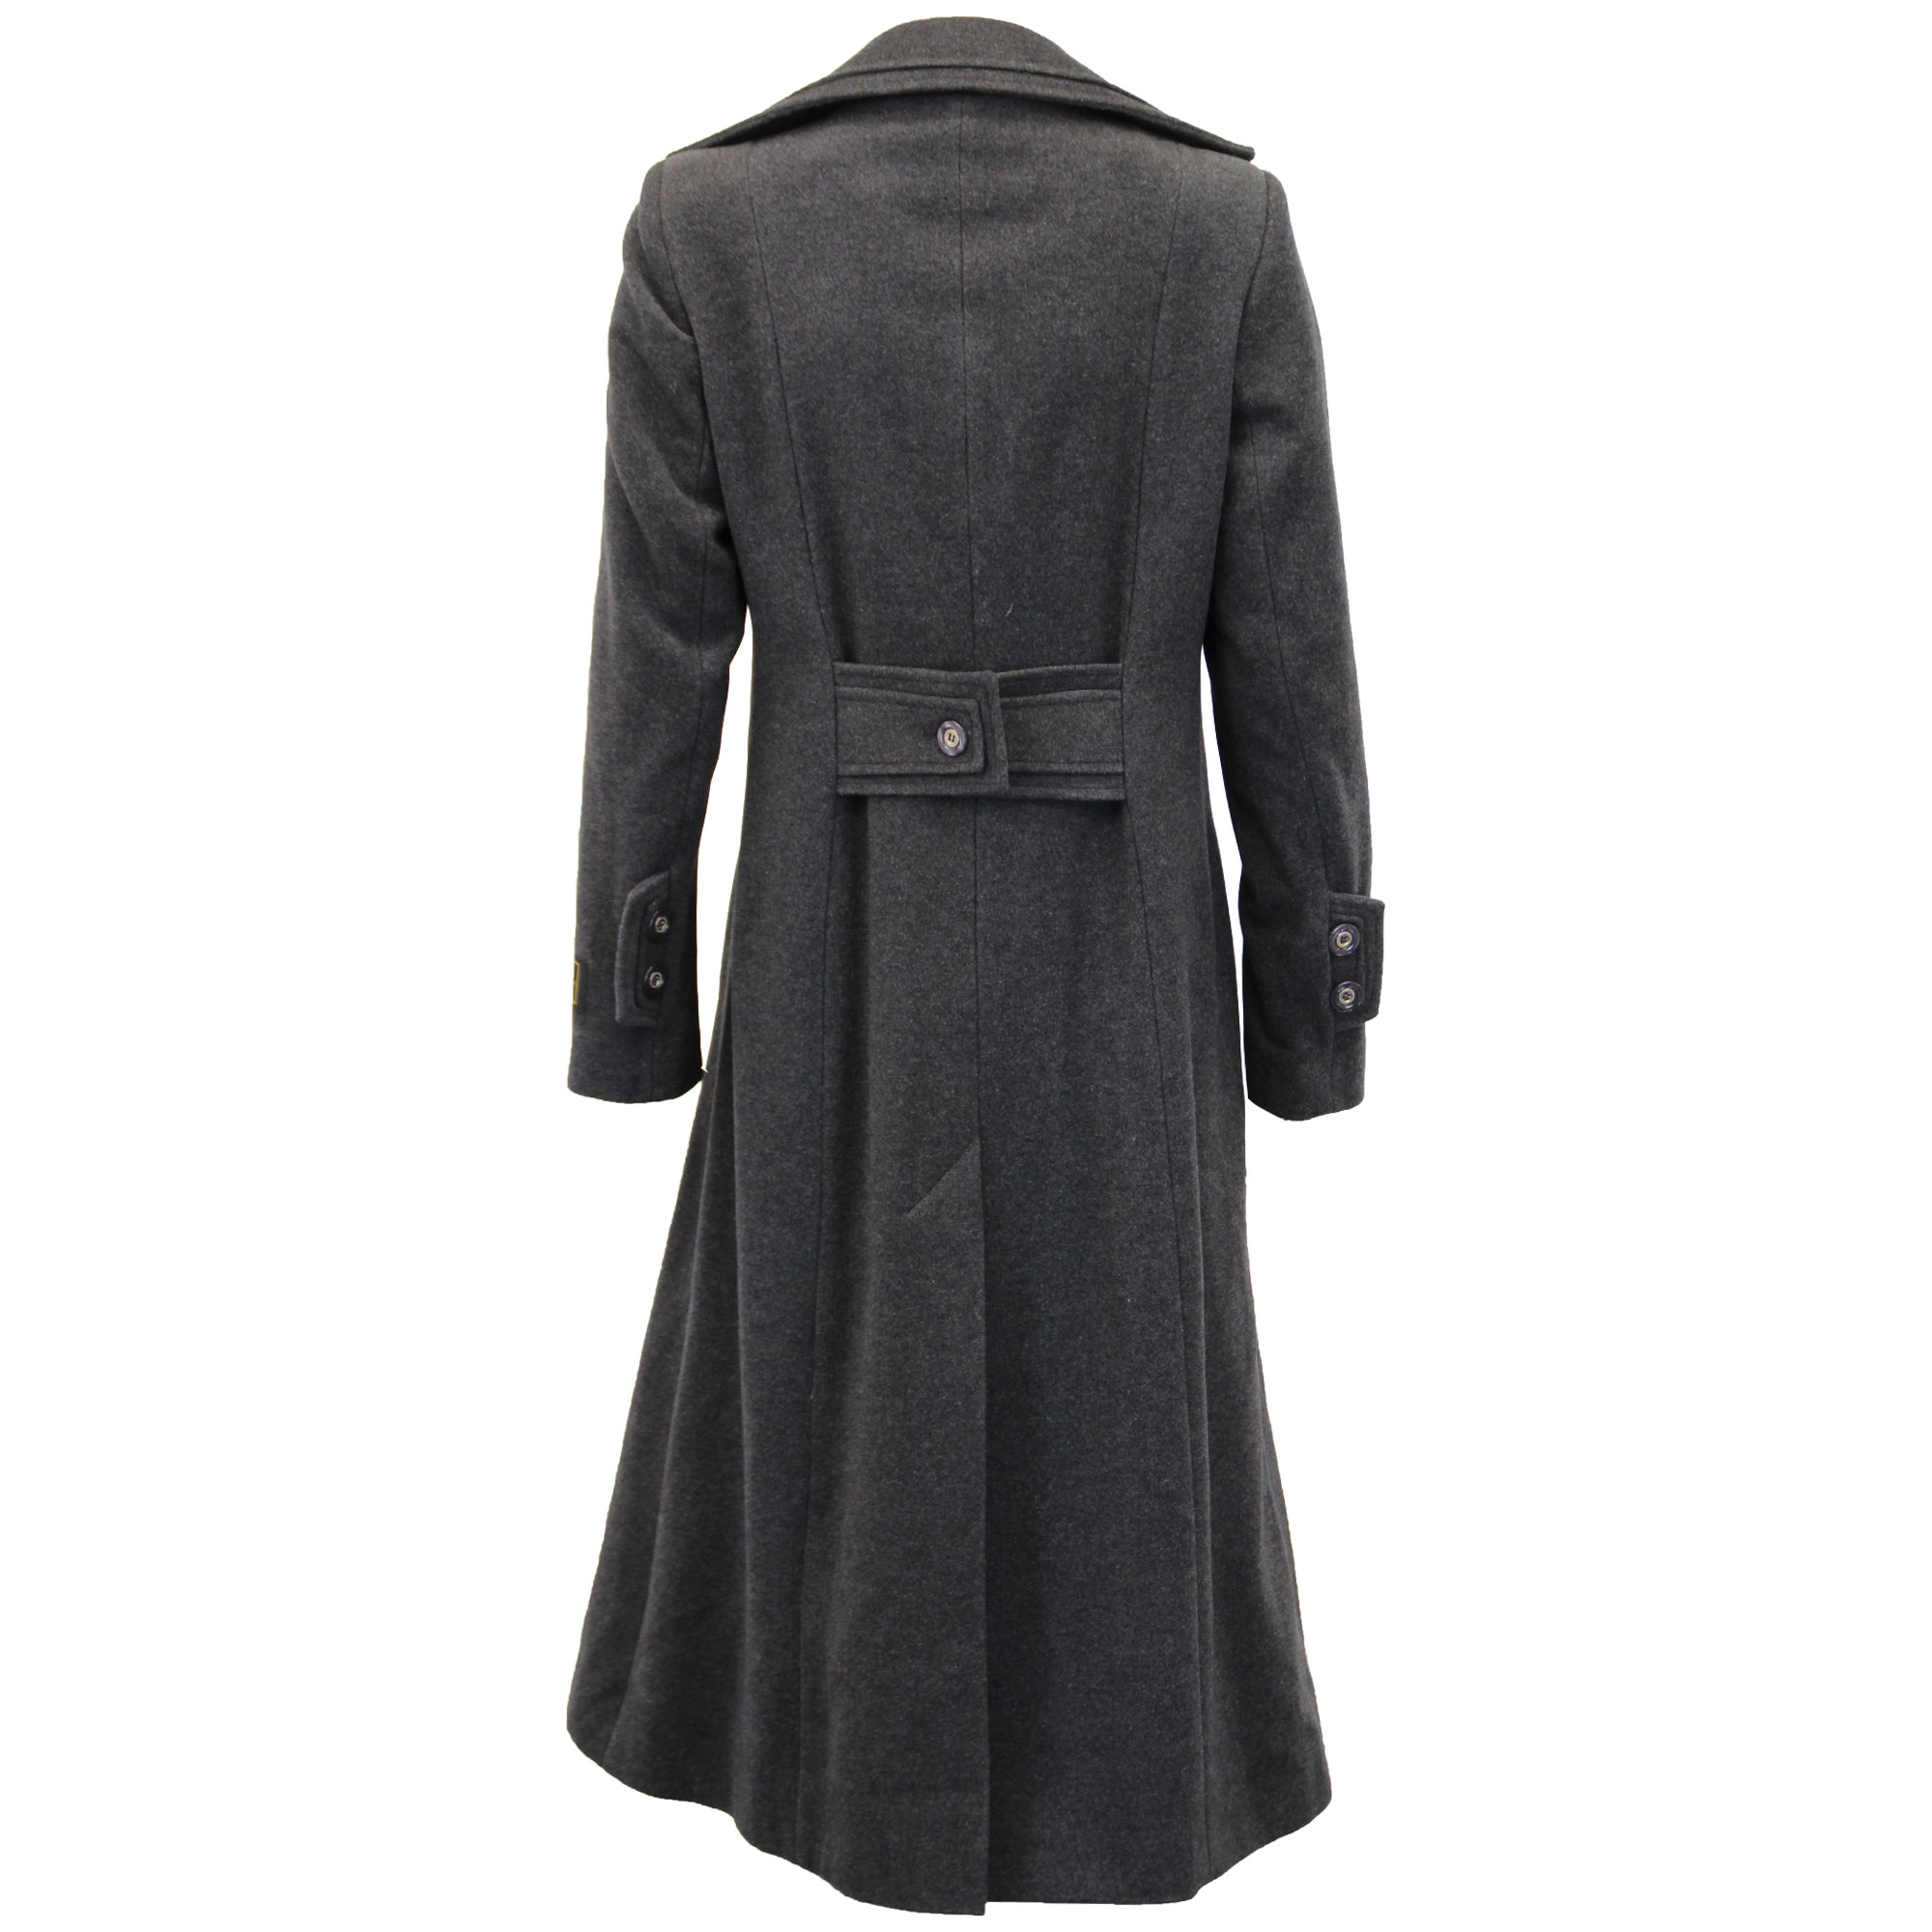 Ladies-Wool-Cashmere-Coat-Women-Jacket-Outerwear-Trench-Overcoat-Winter-Lined thumbnail 40